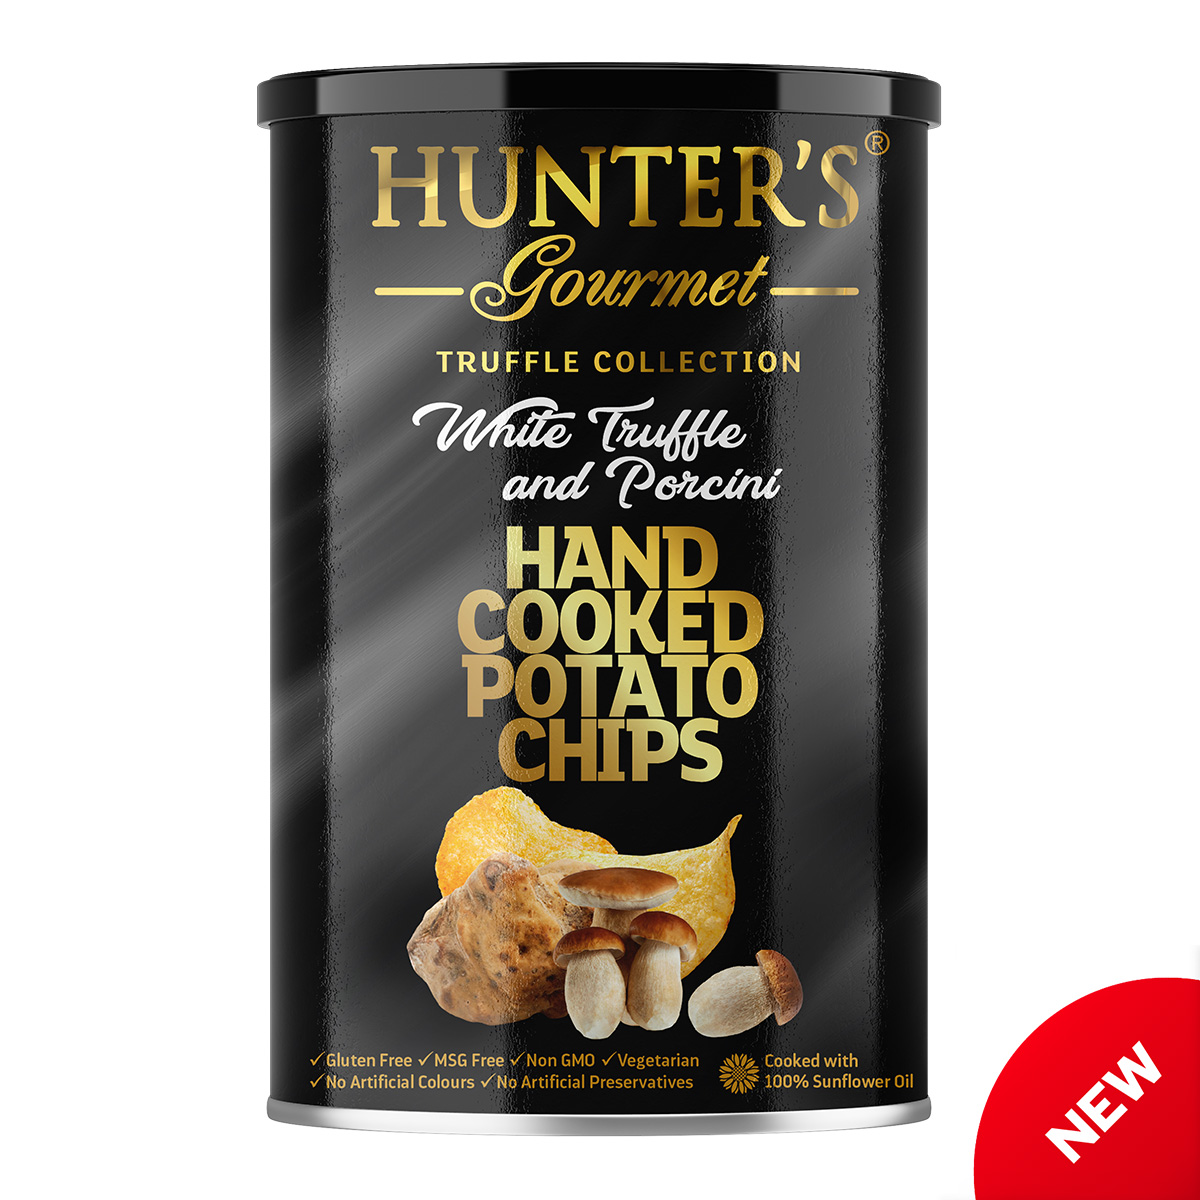 Hunter's Gourmet Hand Cooked Potato Chips – White Truffle – Truffle Collection (150gm)